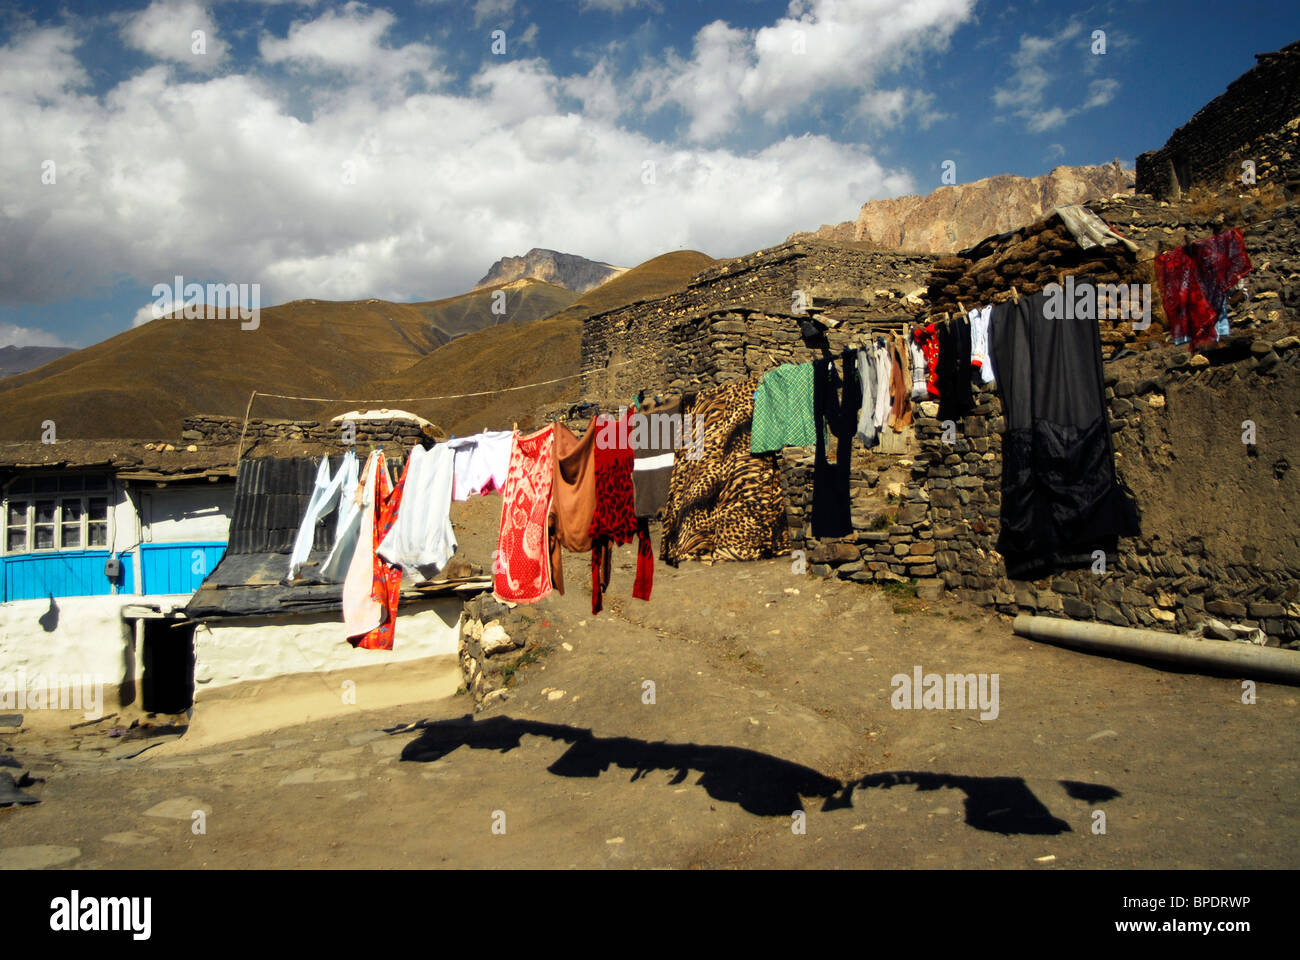 azerbaijan xinaliq view of old fashioned house against cloudy